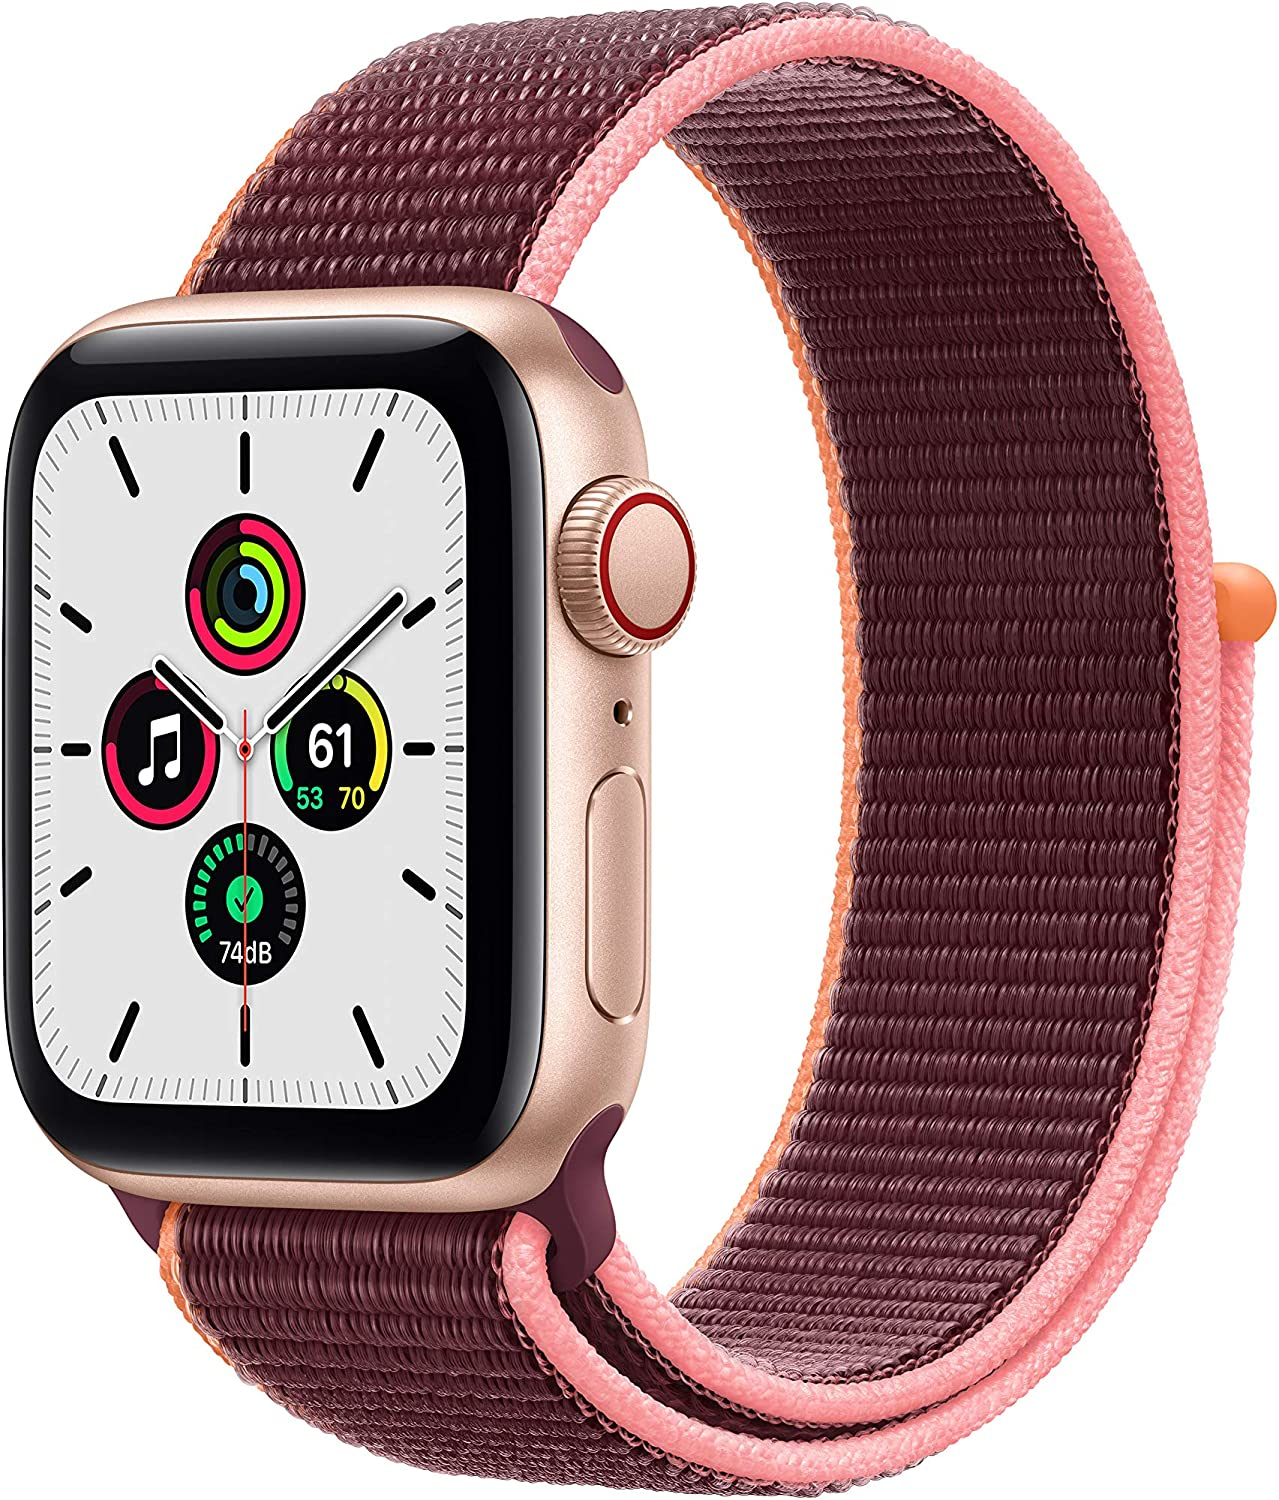 Nuevo Apple Watch SE (GPS + Cellular, 40 mm) Caja de Aluminio en Oro - Correa Loop Deportiva en Color Ciruela